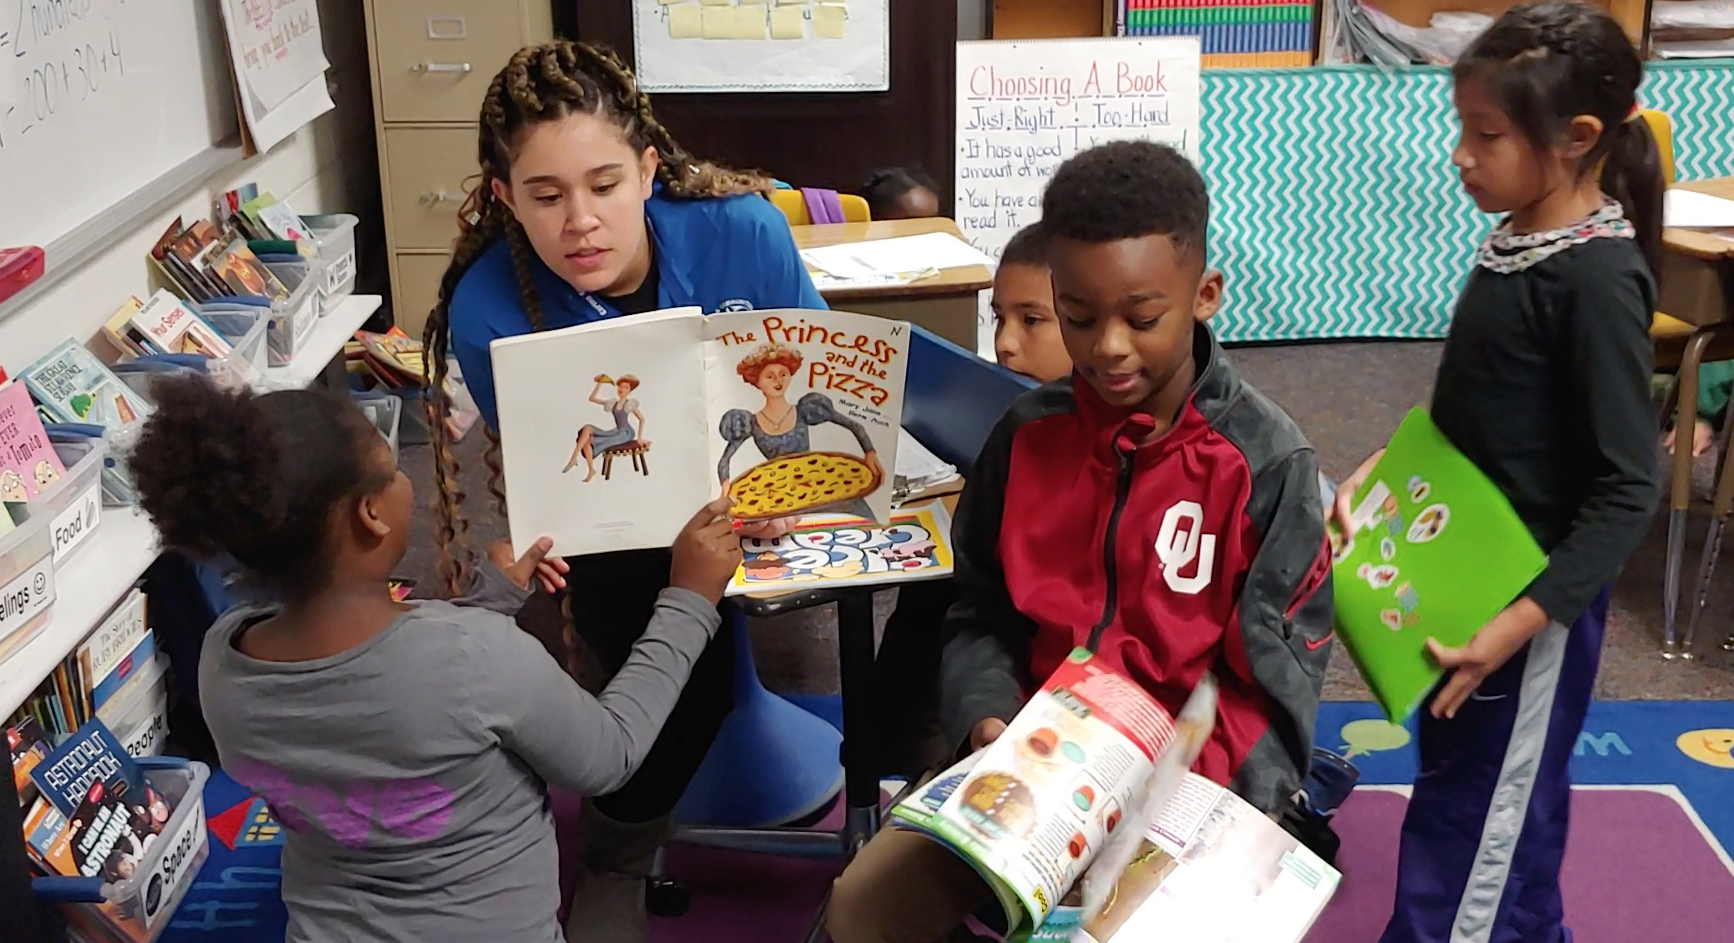 Many Kansas City-area schools will soon be receiving new, inclusive books through a $73,000 award to Turn the Page KC and LINC from the nonprofit social enterprise First Book.